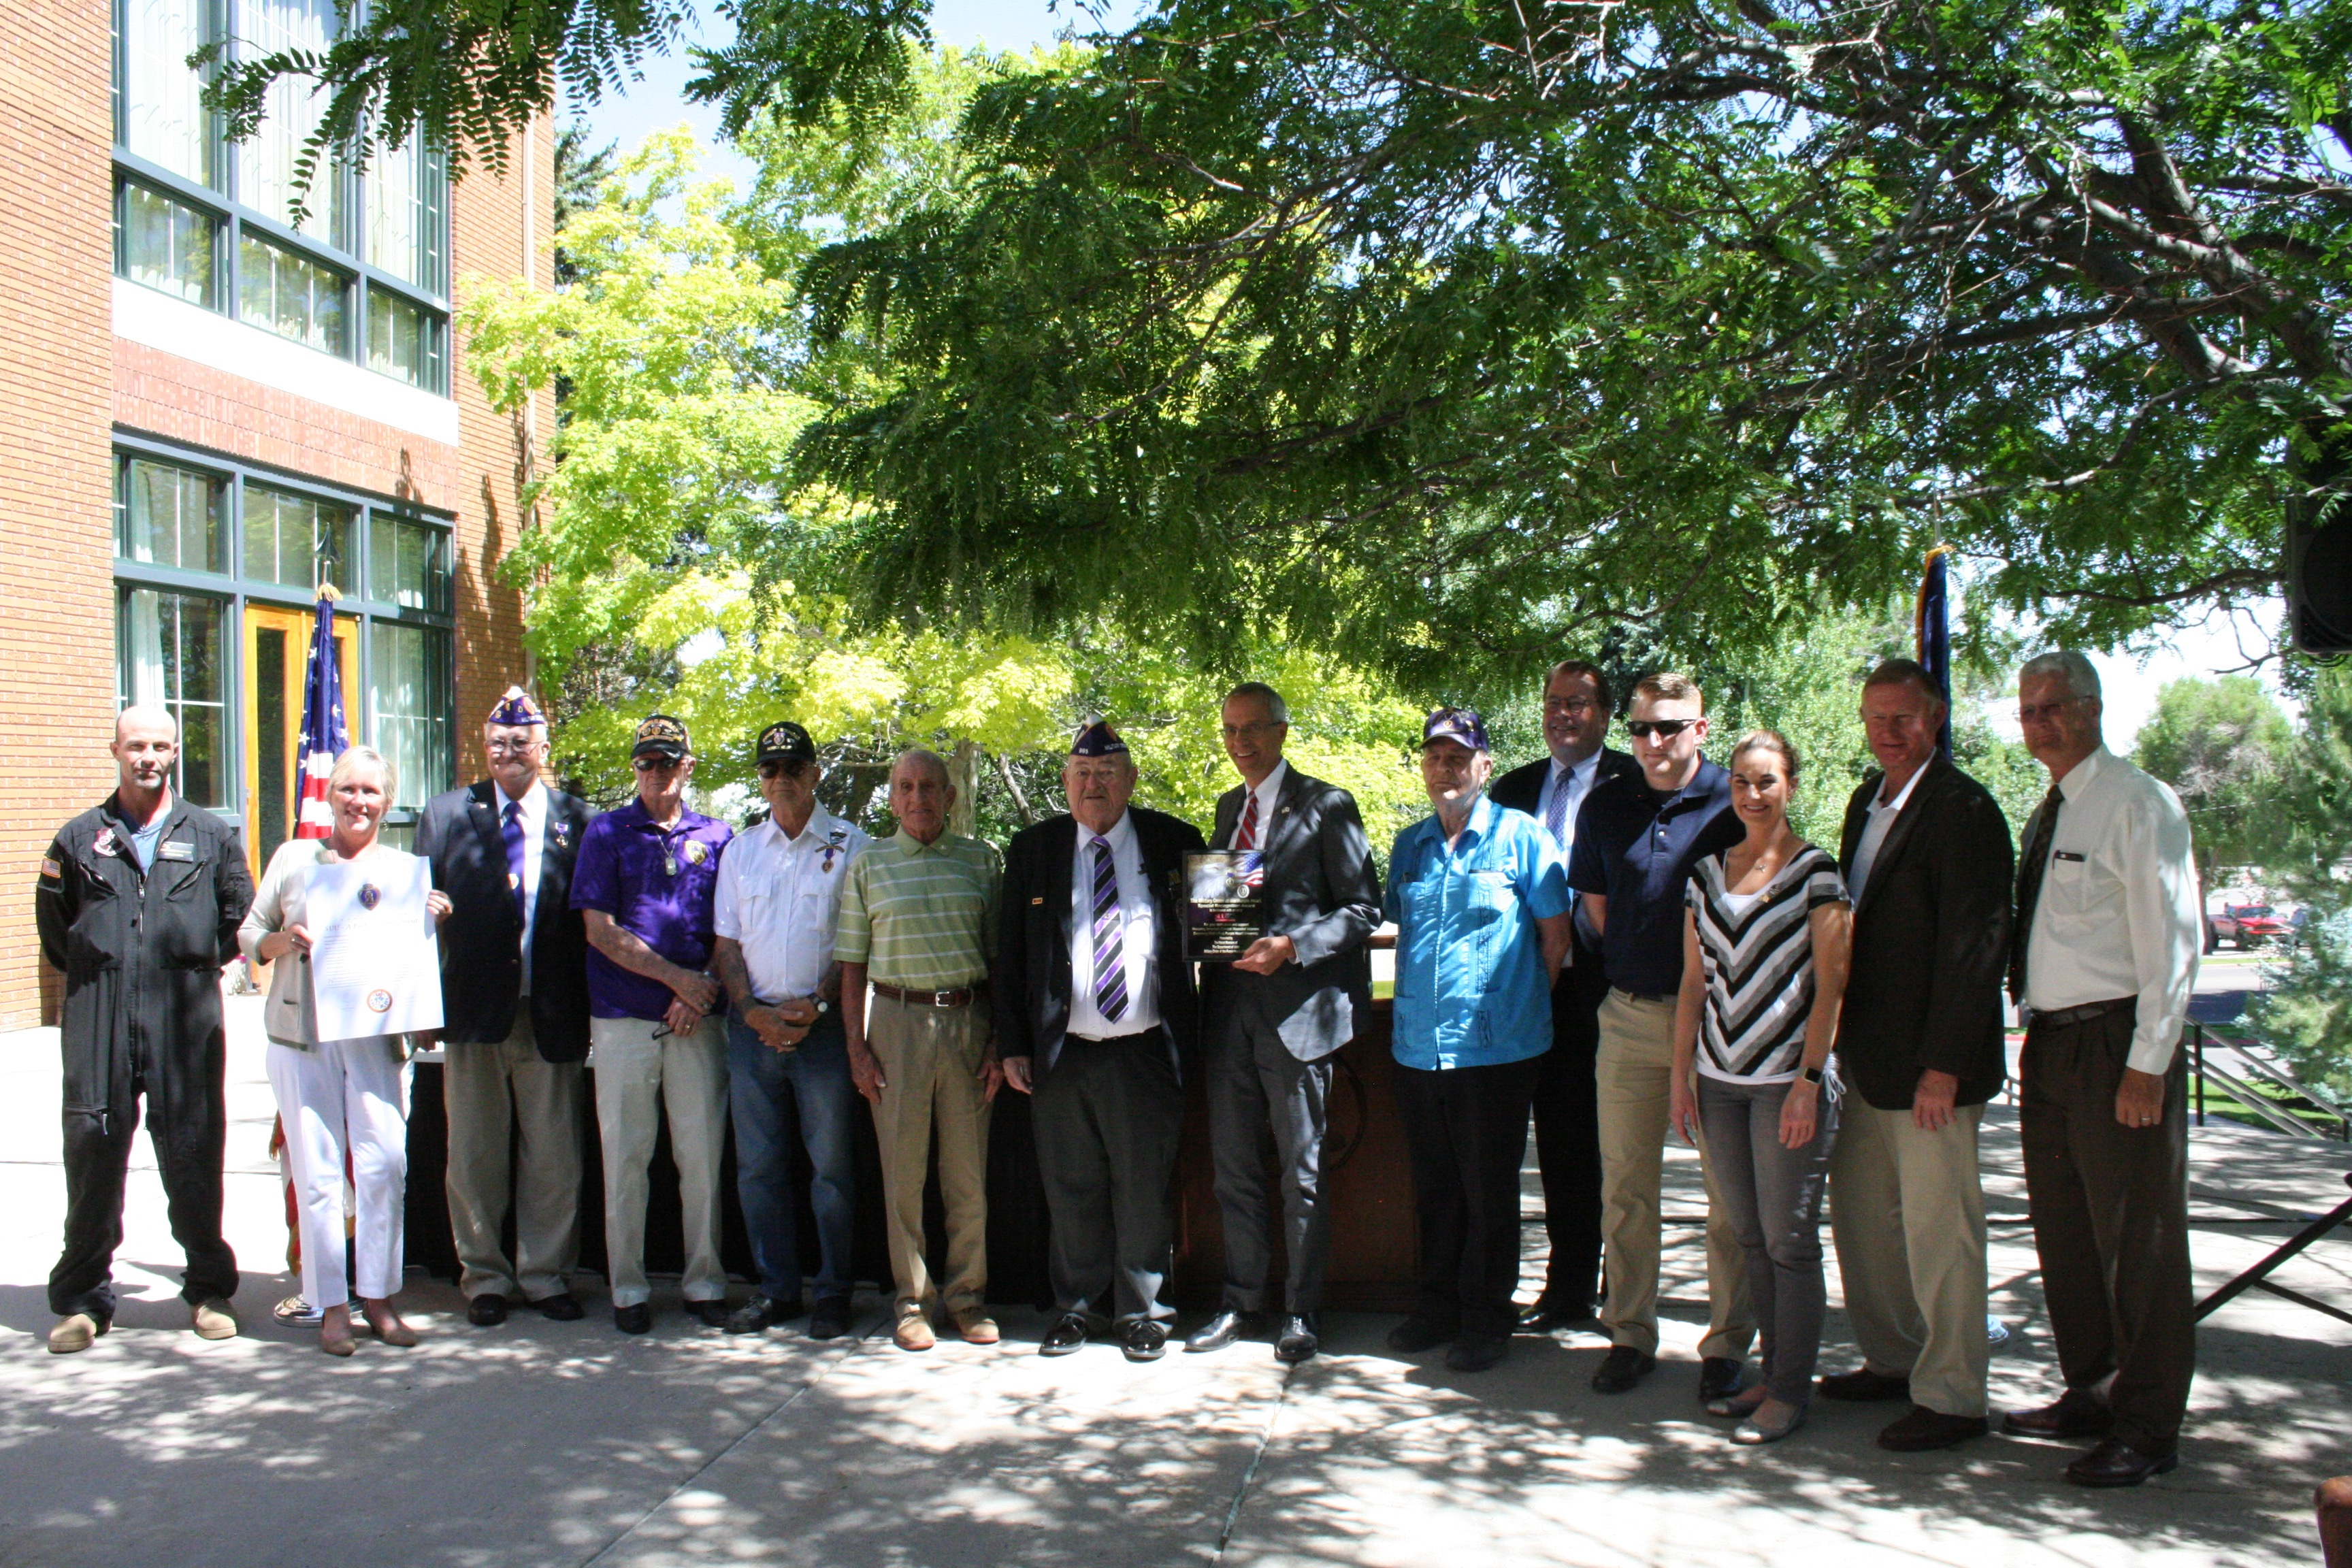 Purple Heart Recipients, SUU Administration and local elected officials join for a photo with the official proclamation, Cedar City, Utah, June 24, 2016   Photo by Kaleigh Bronson, St. George News / Cedar City News